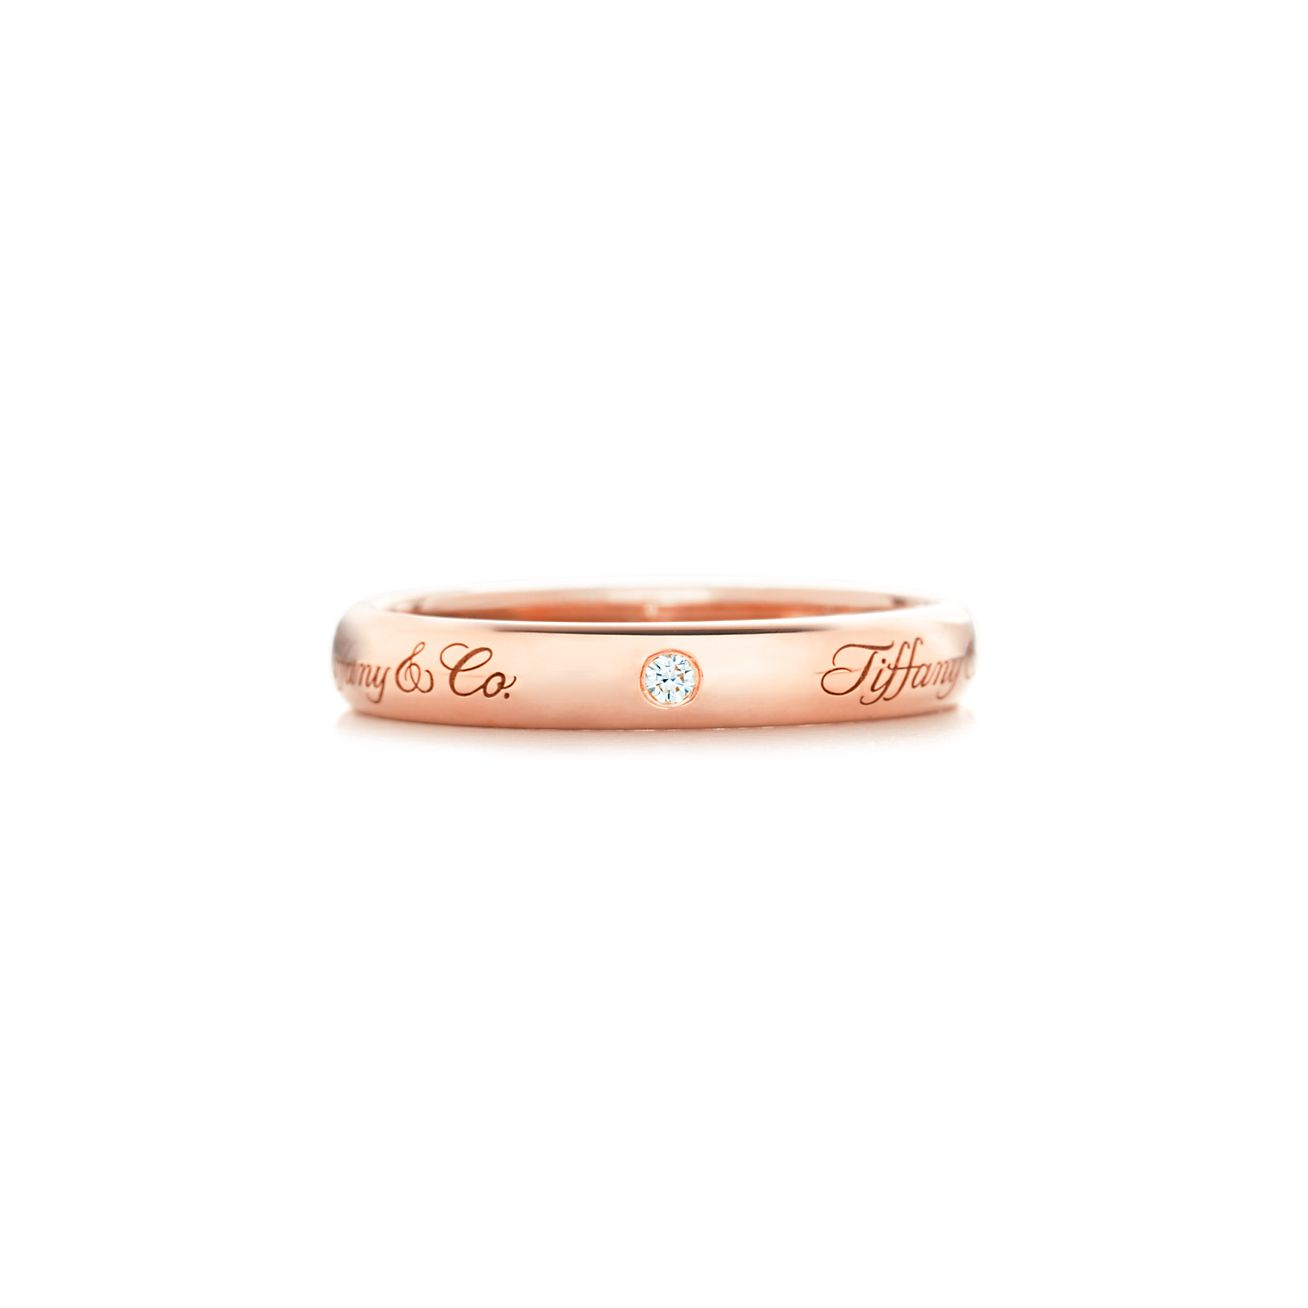 Tiffany Notes I Love You band ring in platinum, 3 mm wide - Size 4 1/2 Tiffany & Co.